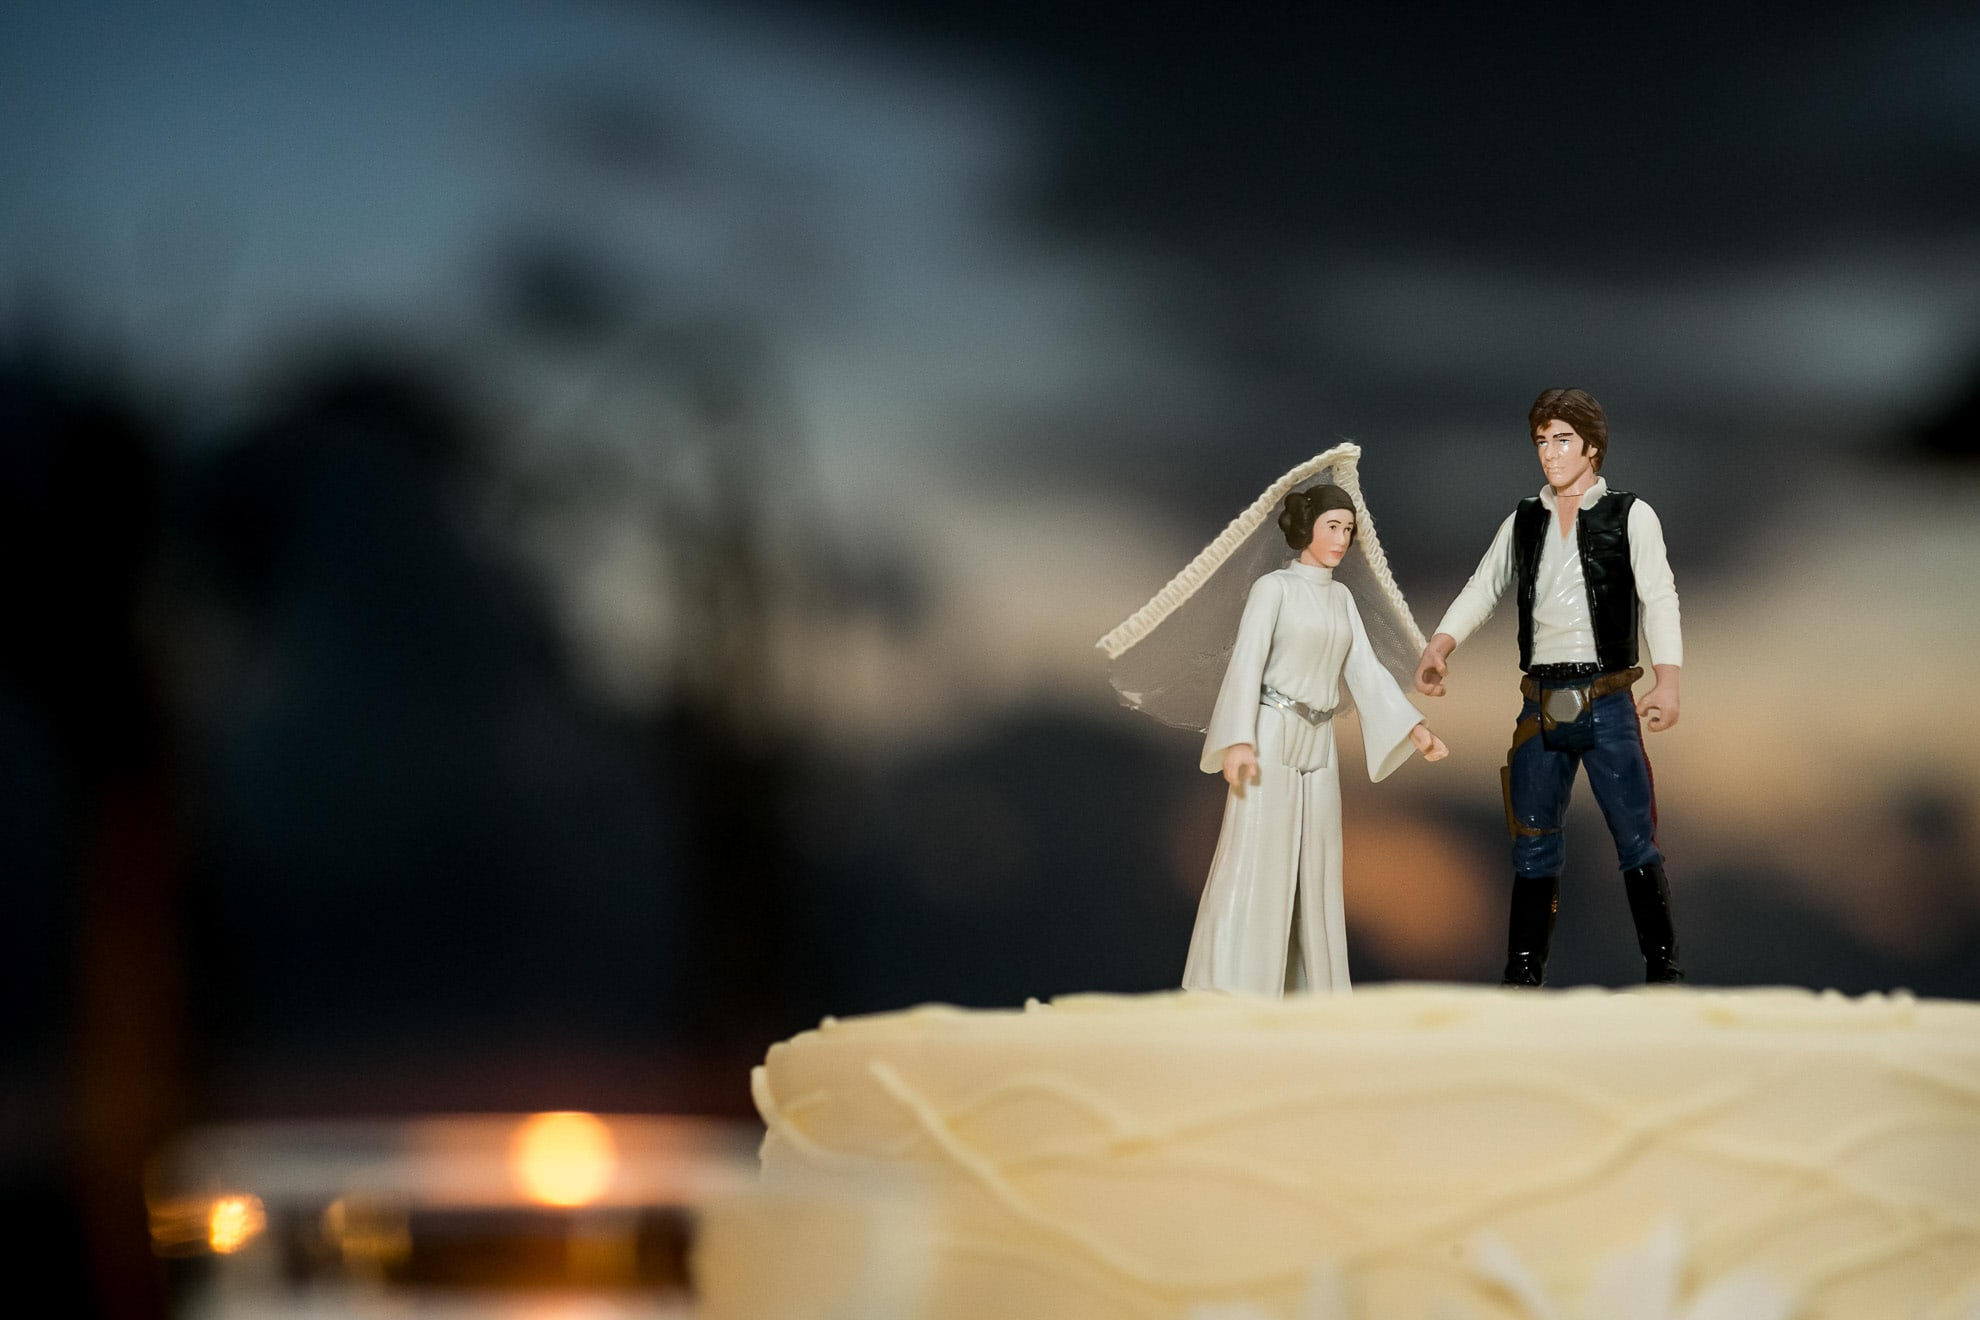 Star wars cake topper with Princess Leia and Han Solo.